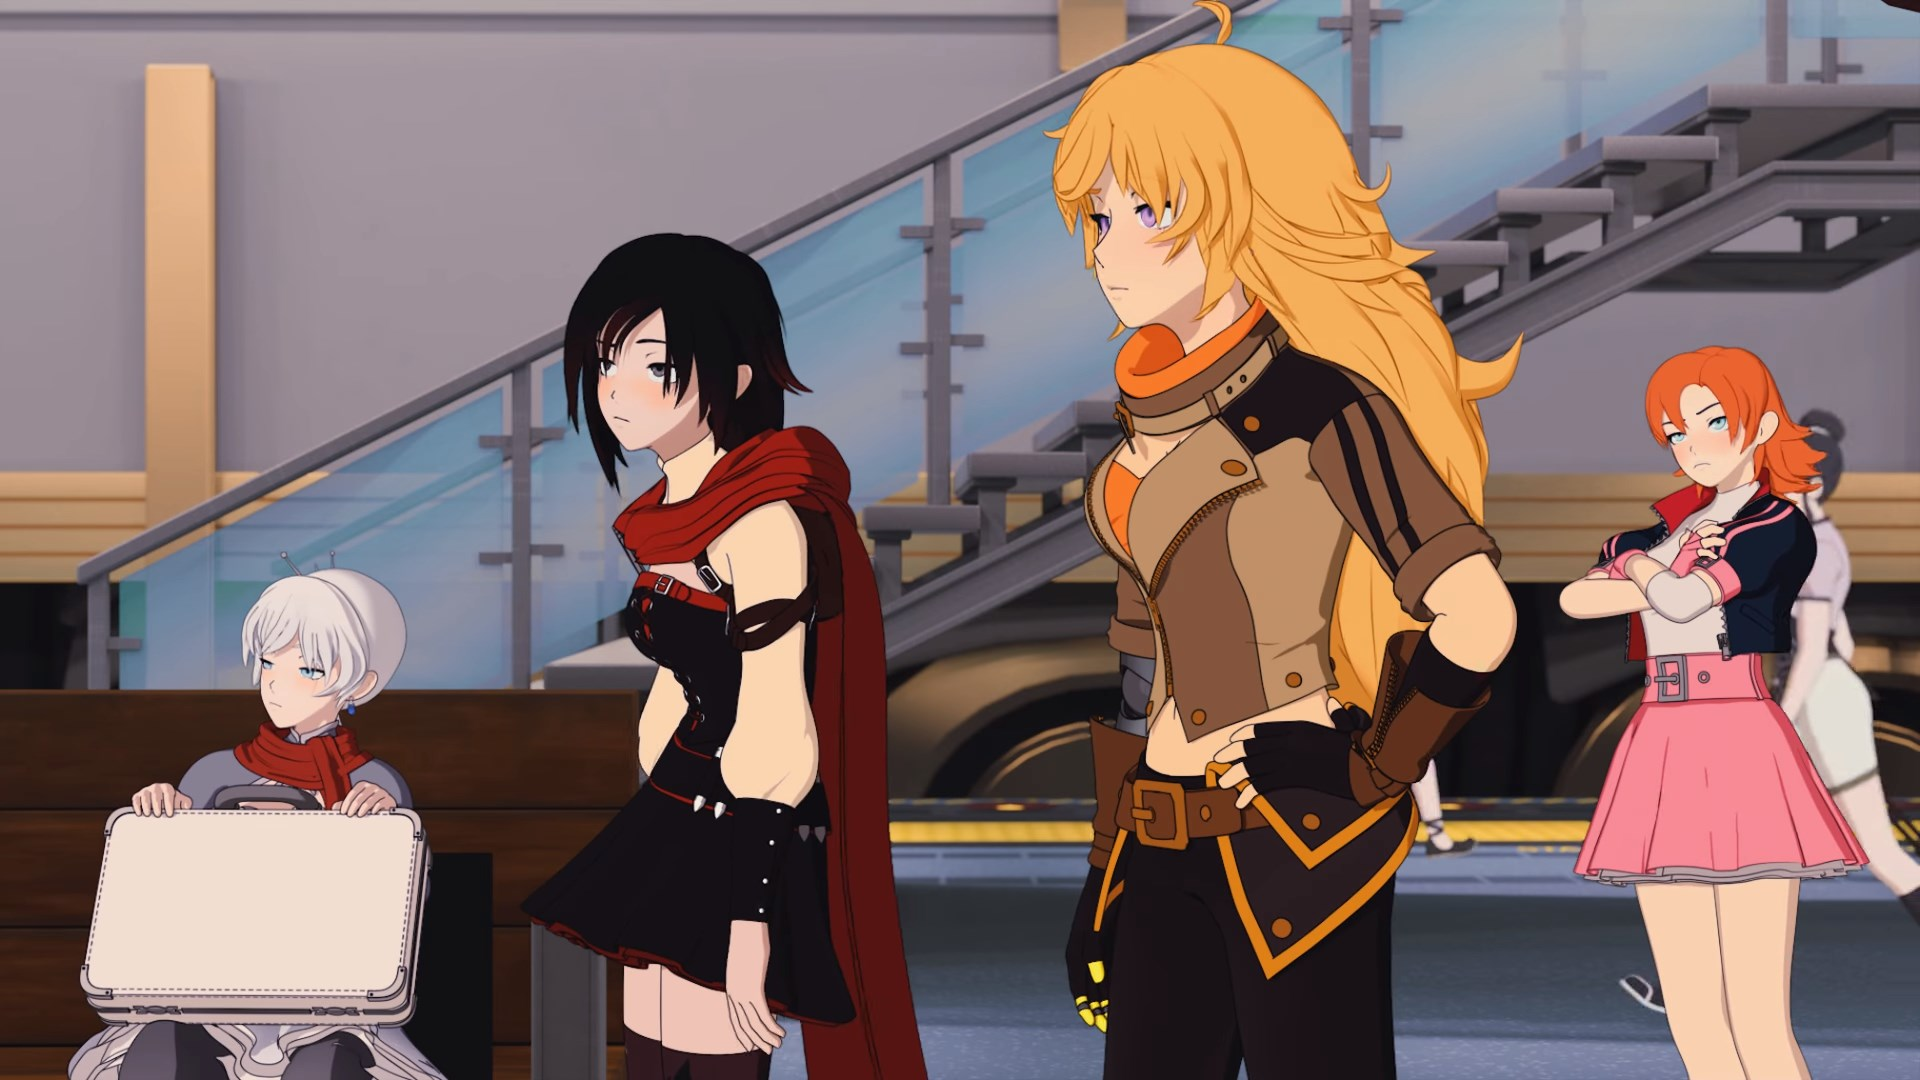 rwby_s6e1_disappointed